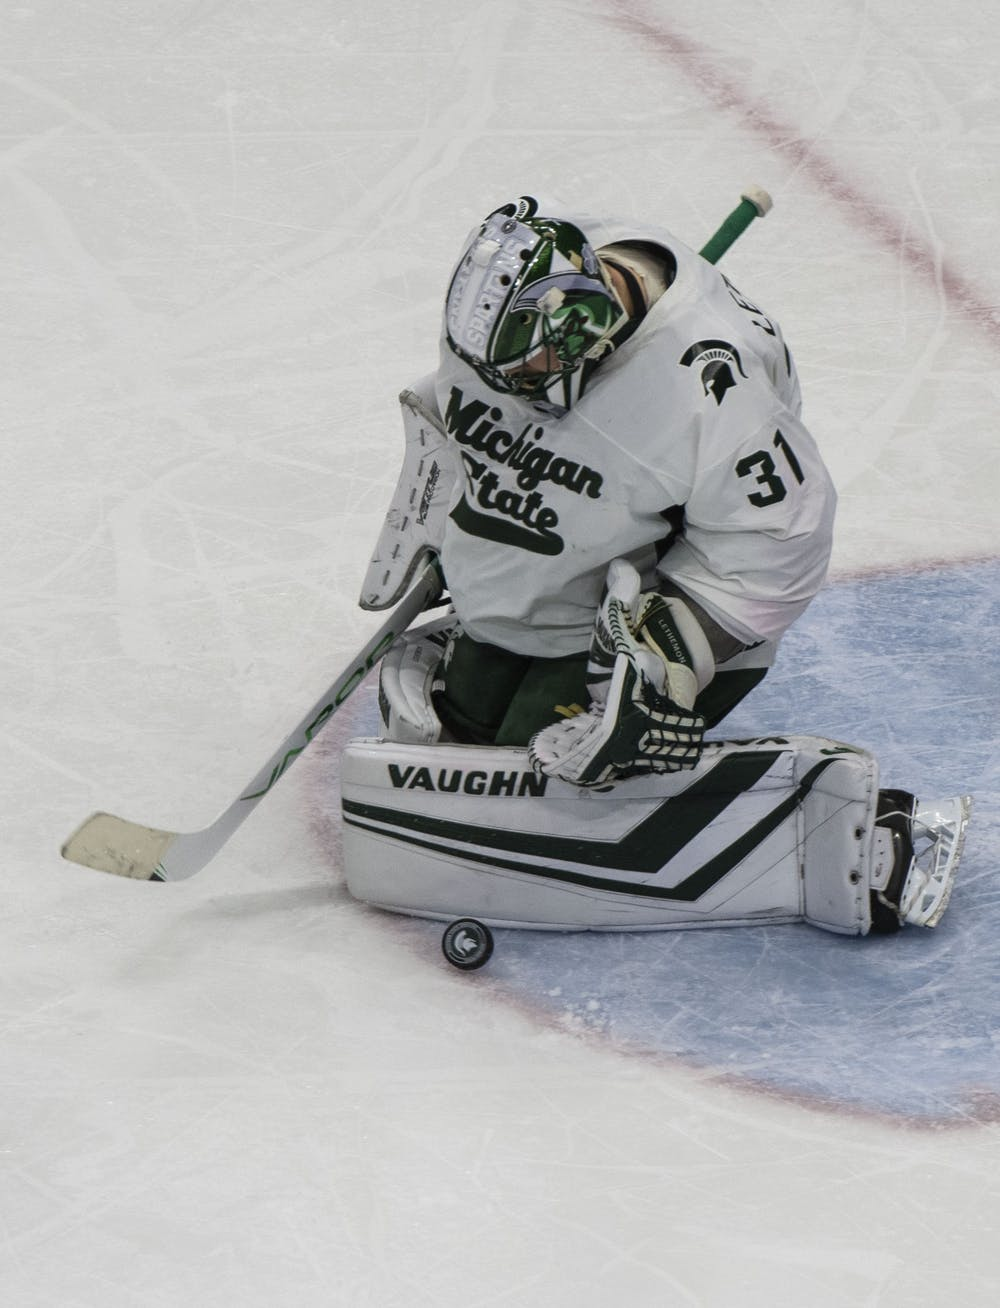 Senior goaltender John Lethemon (31) protects the Spartan goal from a shot from the Nittany Lions. Michigan State fell to Penn State 2-1 on January 25, 2020.